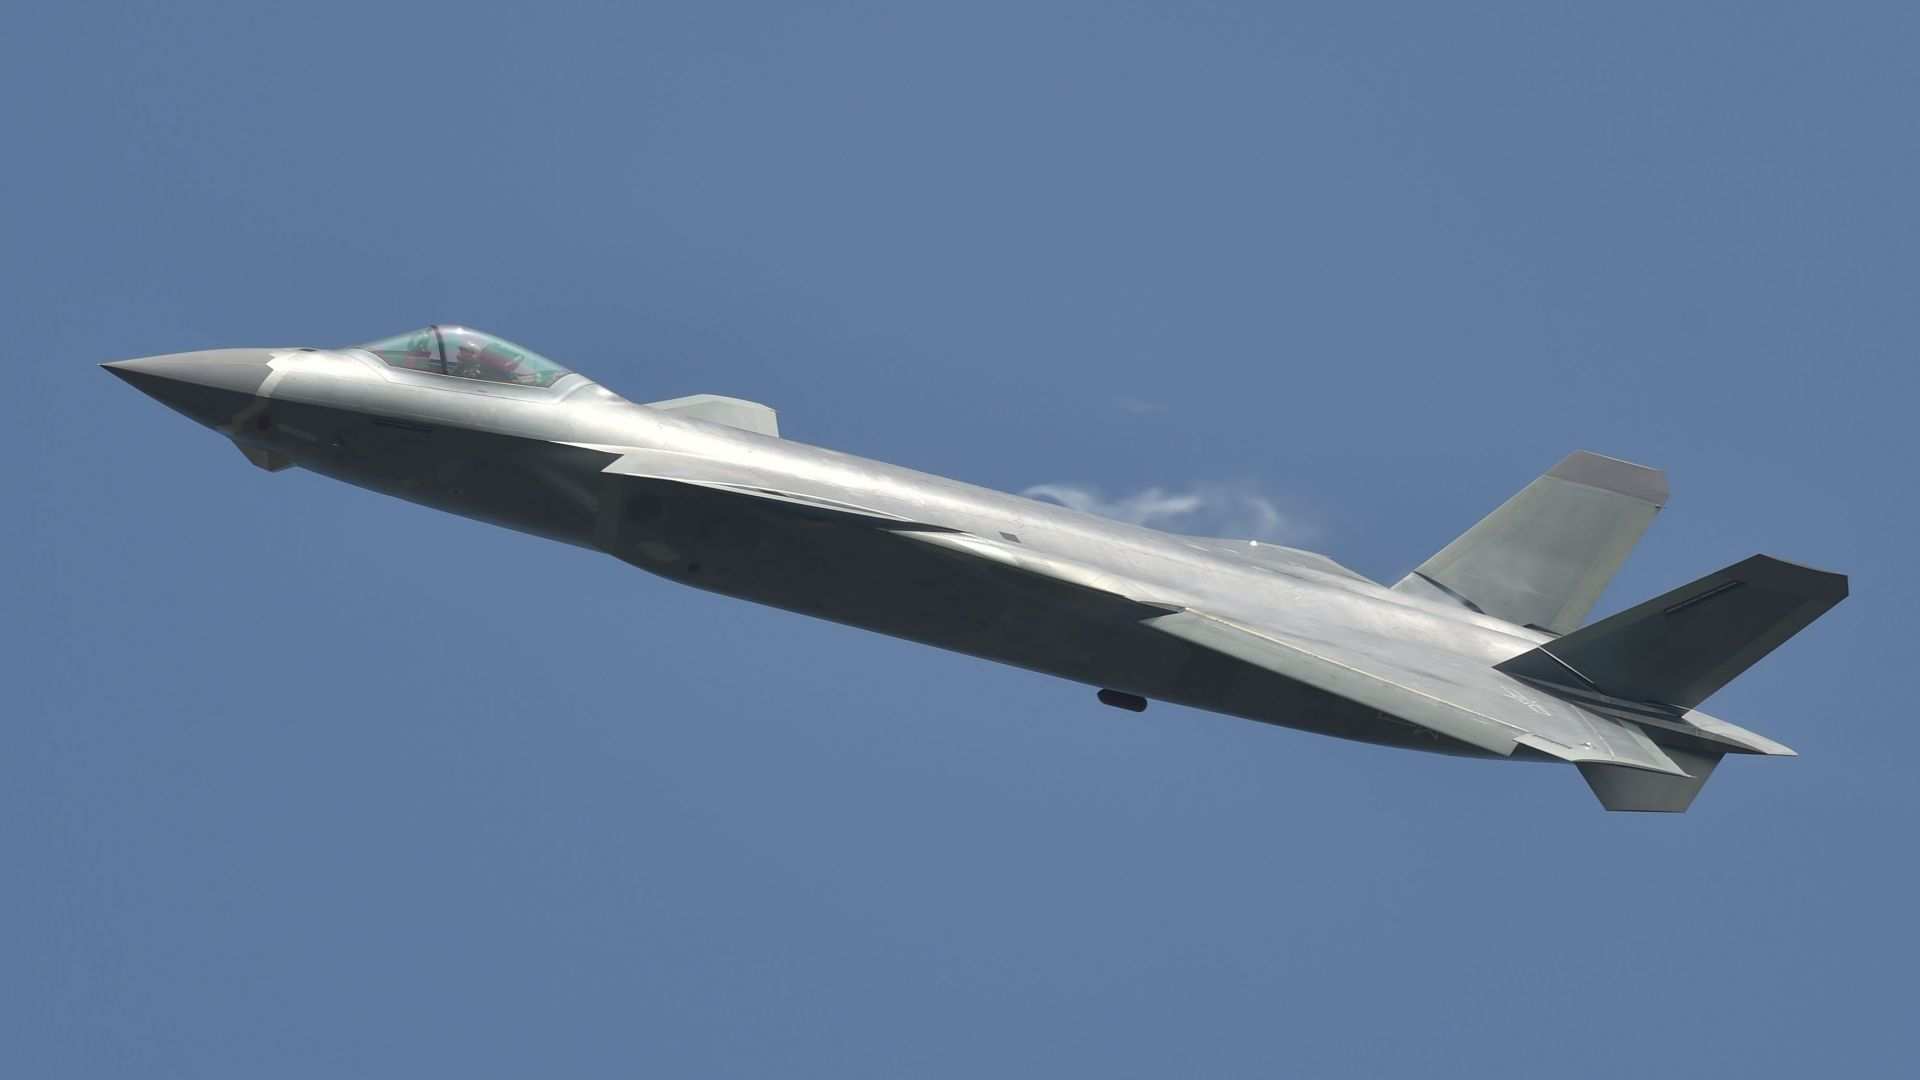 Shenyang J-20, армия Китая, ВВС Китая, Shenyang J-20, China army, fighter aircraft, China air force (horizontal)